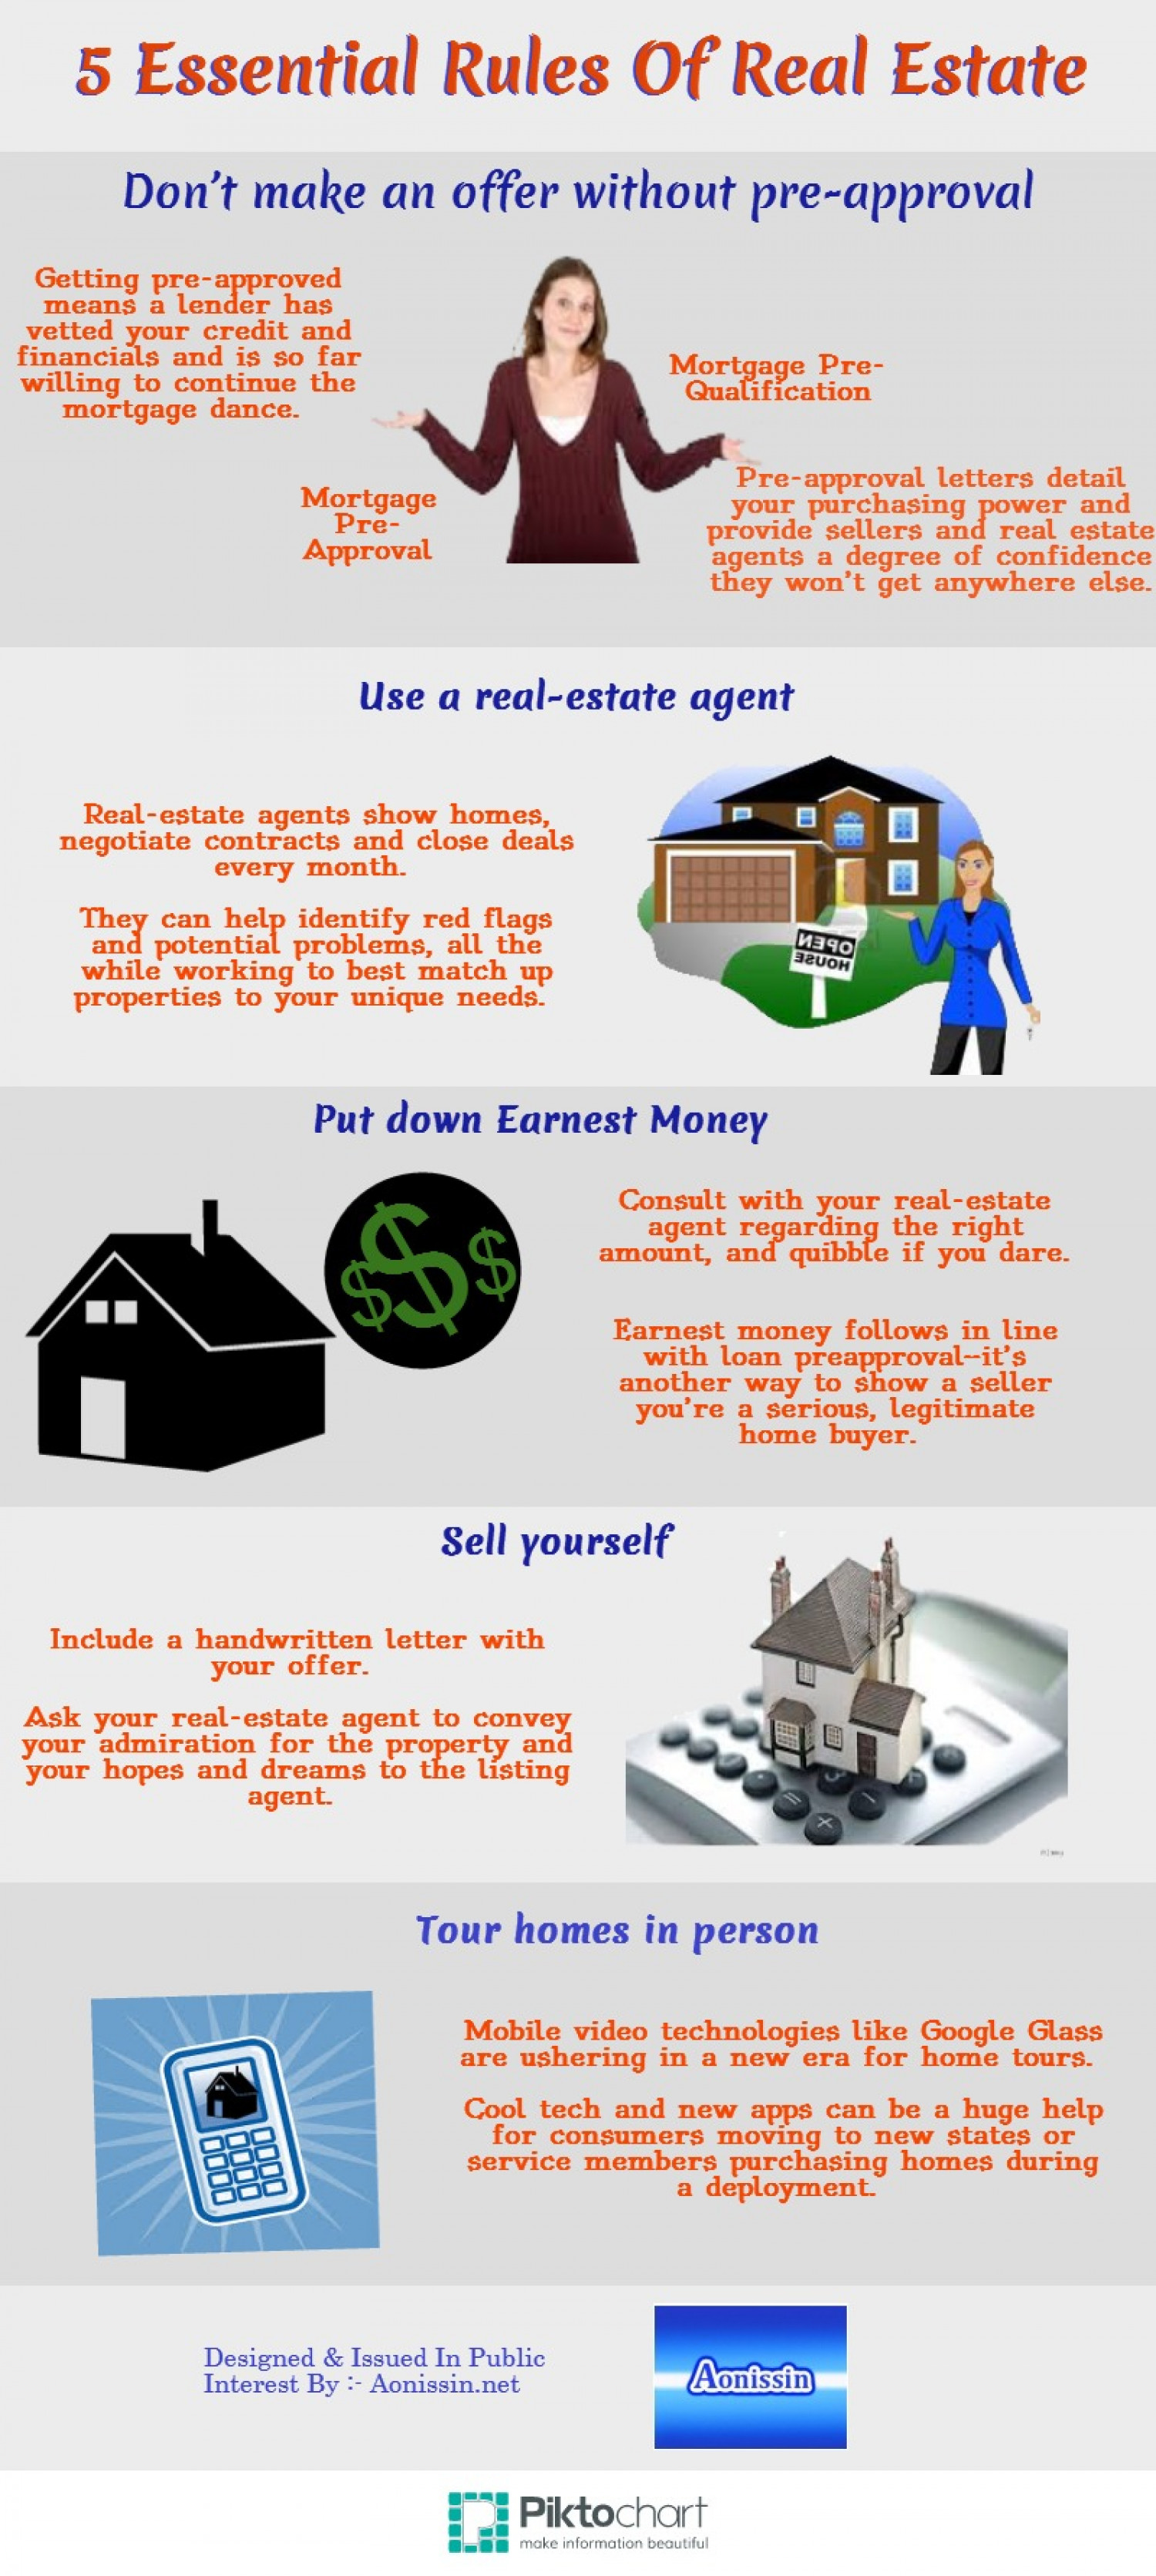 5 Essential Rules Of Real Estate Infographic